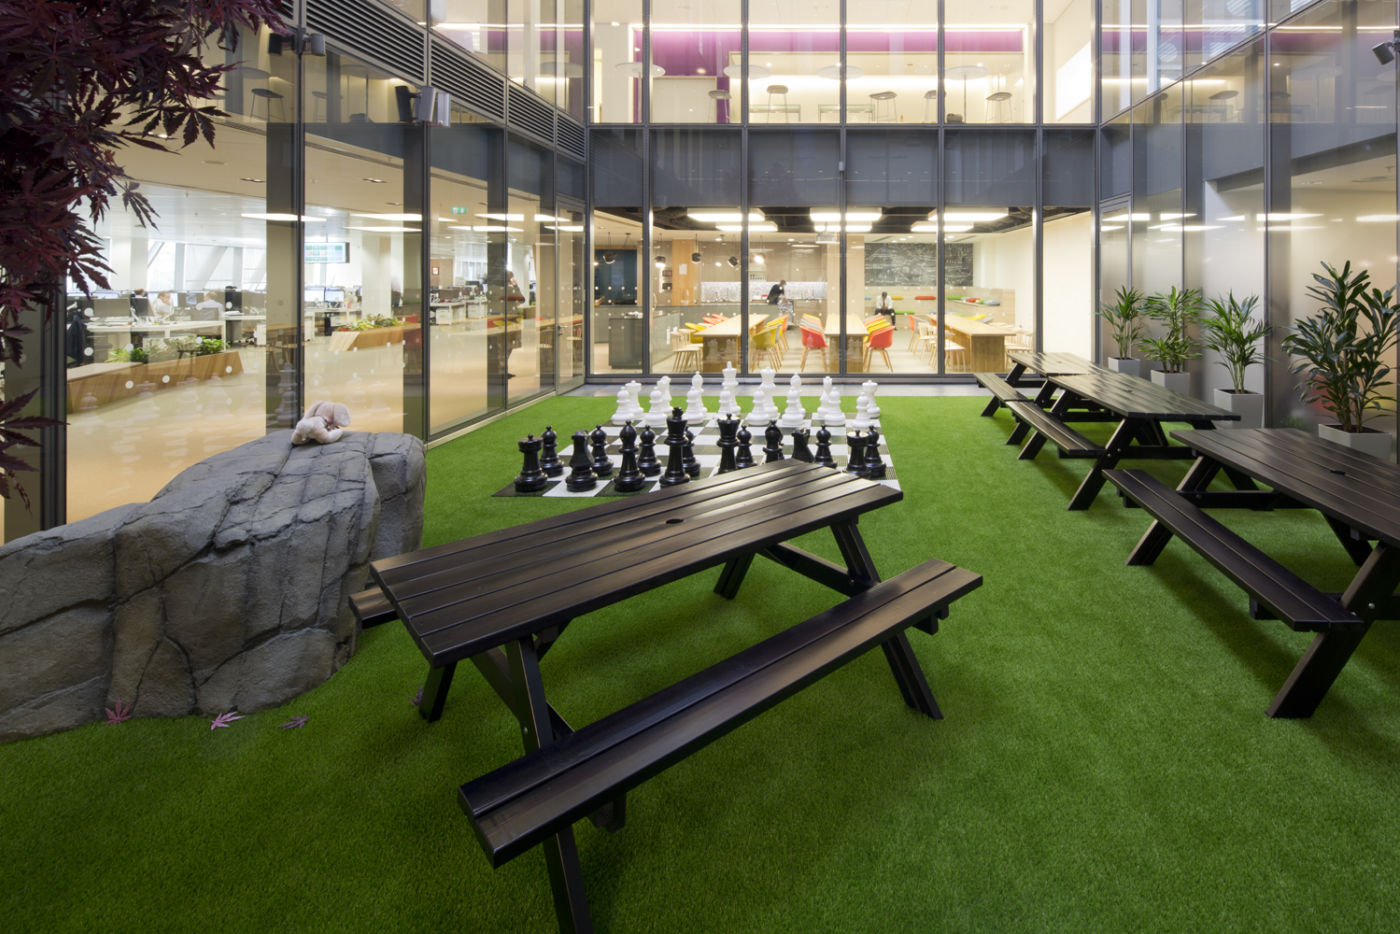 Chess set in office courtyard